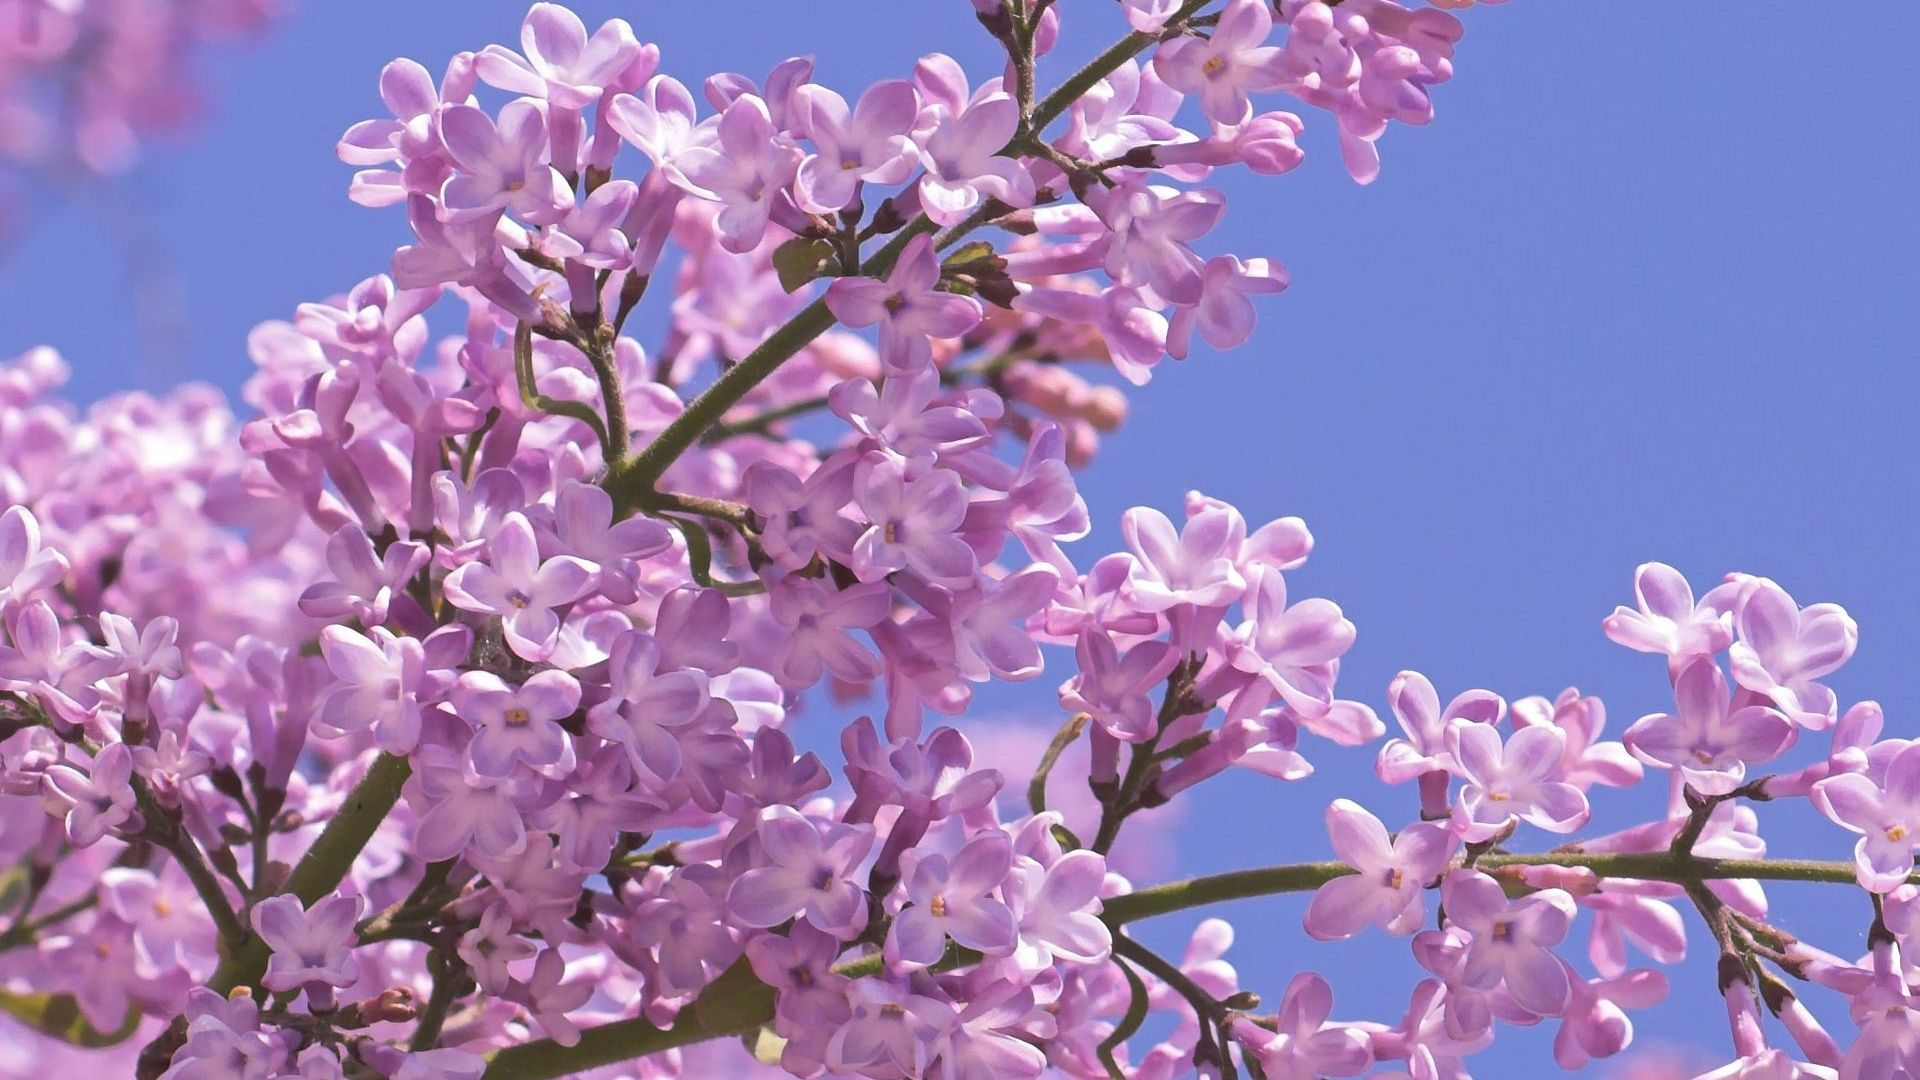 Lilac Tree Wallpaper Spring Flowers Wallpaper Lilac Tree Lilac Flowers